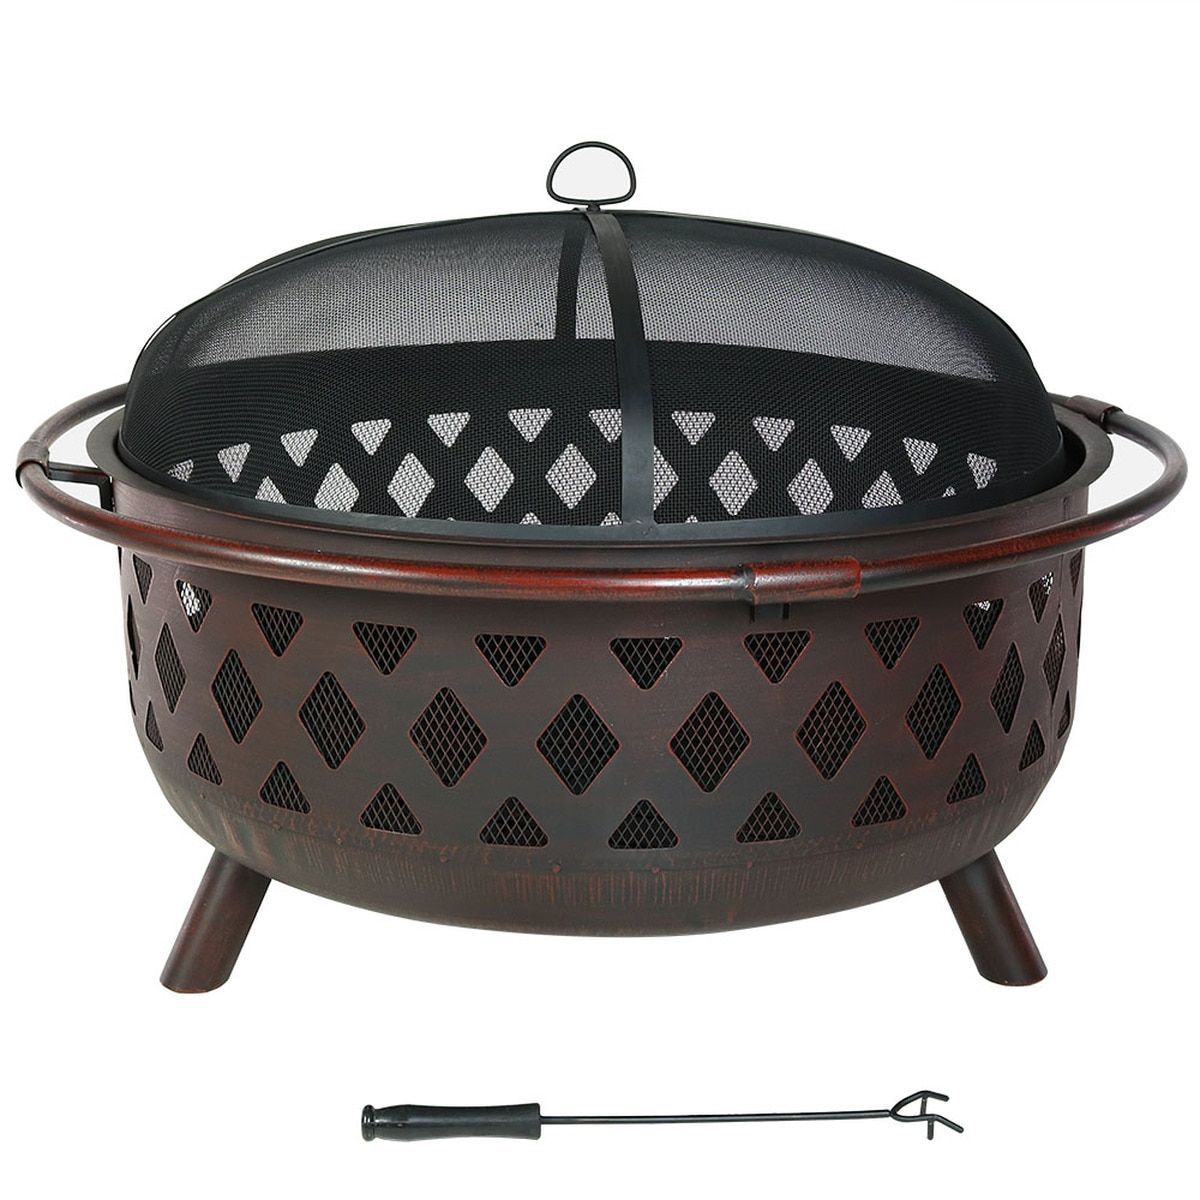 Sunnydaze 36 Inch Crossweave Fire Pit W Spark Screen Metal Fire Pits Large Sunnydaze 36 Inch Large Bronze Cro In 2020 Wood Burning Fire Pit Fire Pit Outdoor Fire Pit